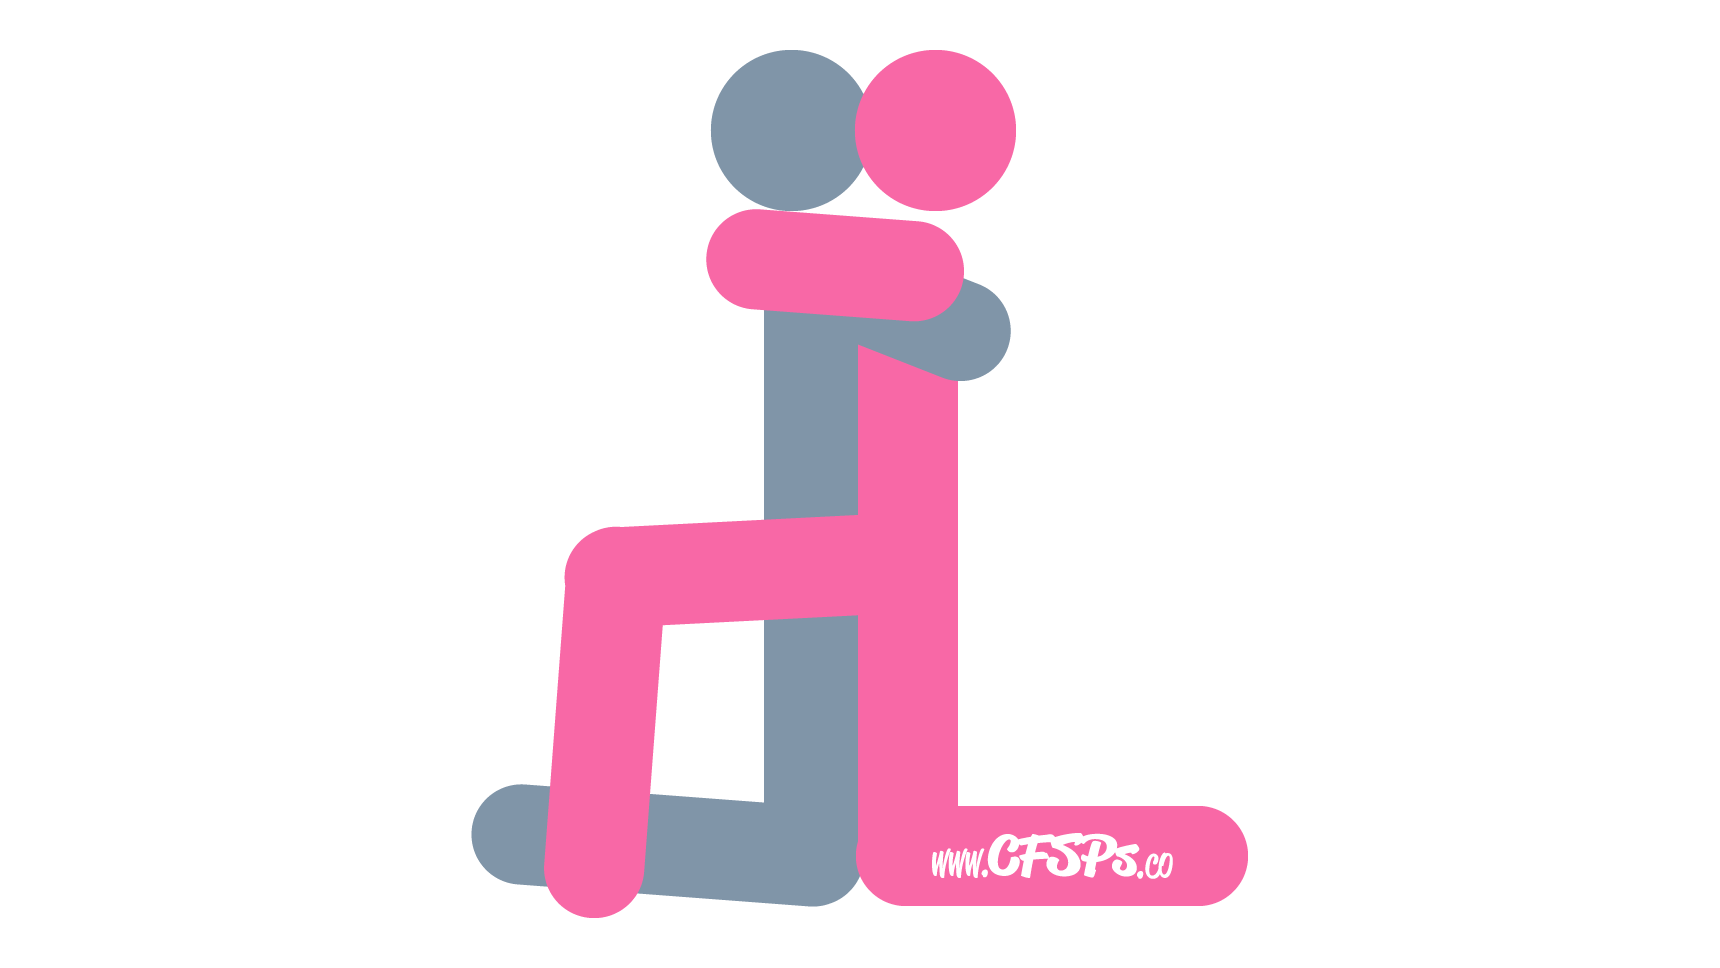 An illustration of the Long Goodbye sex position. This picture demonstrates how Long Goodbye is an intimate, kneeling sex position.